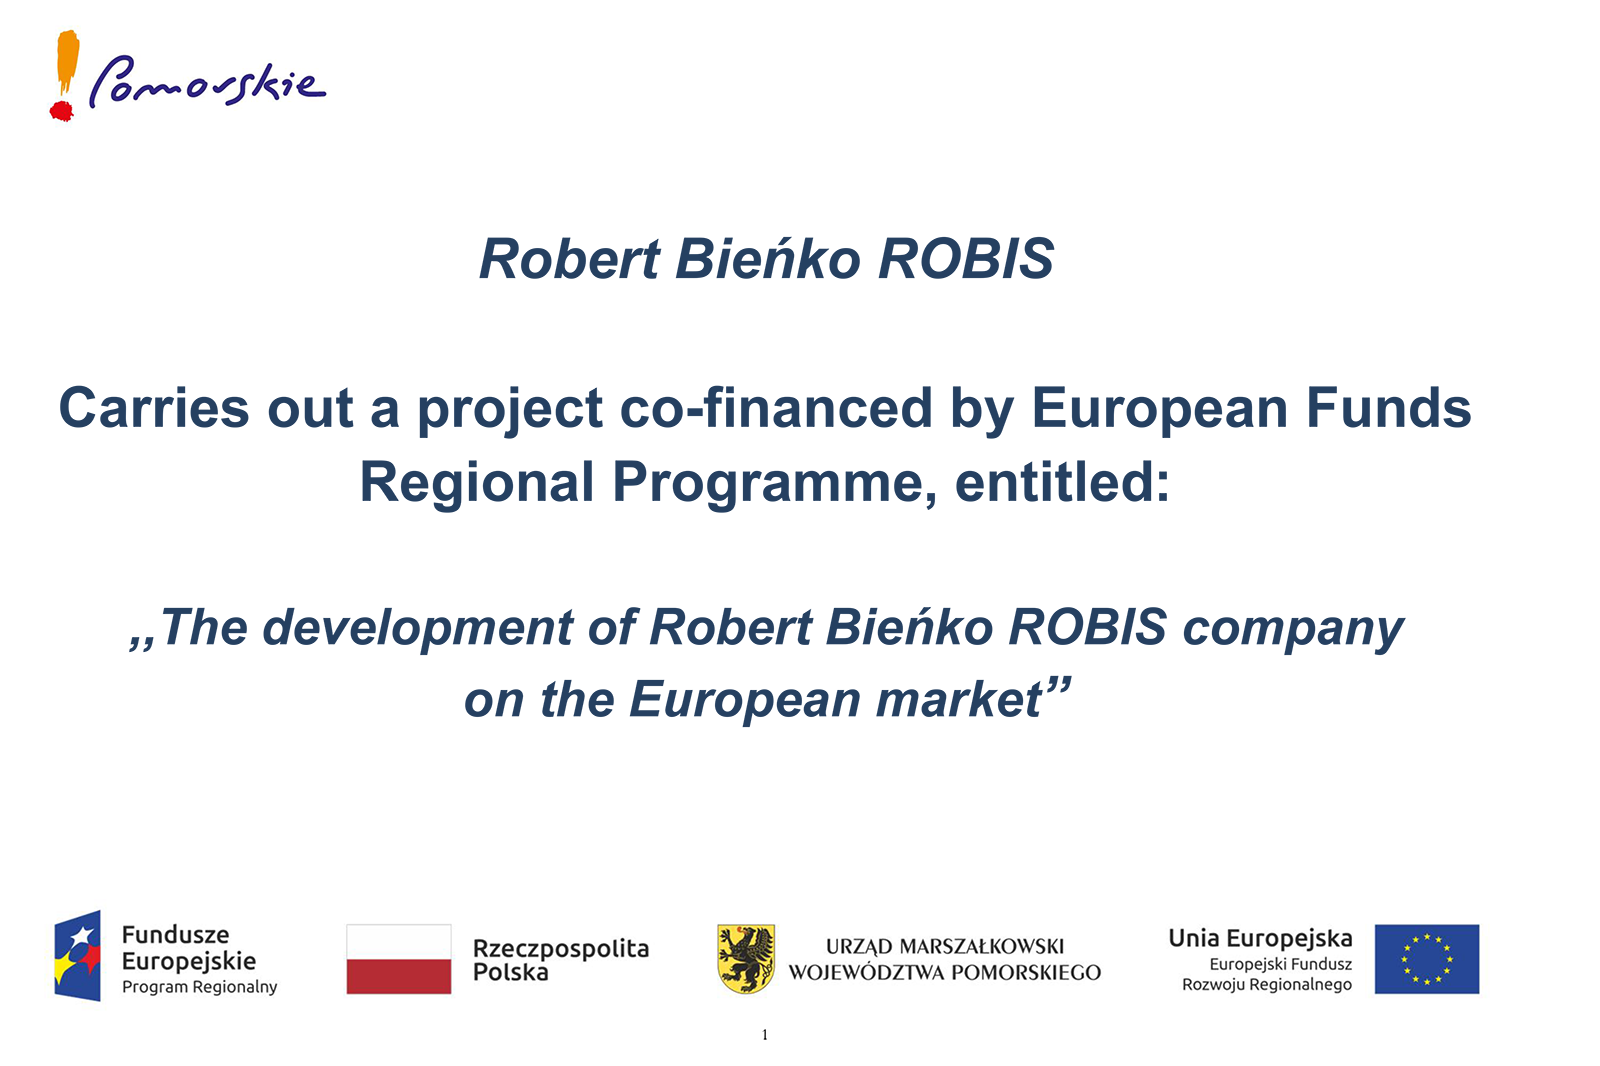 Robert Bieńko ROBIS Carries out a project co-financed by European Funds Regional Programme, entitled:  ,,The development of Robert Bieńko ROBIS company on the European market""